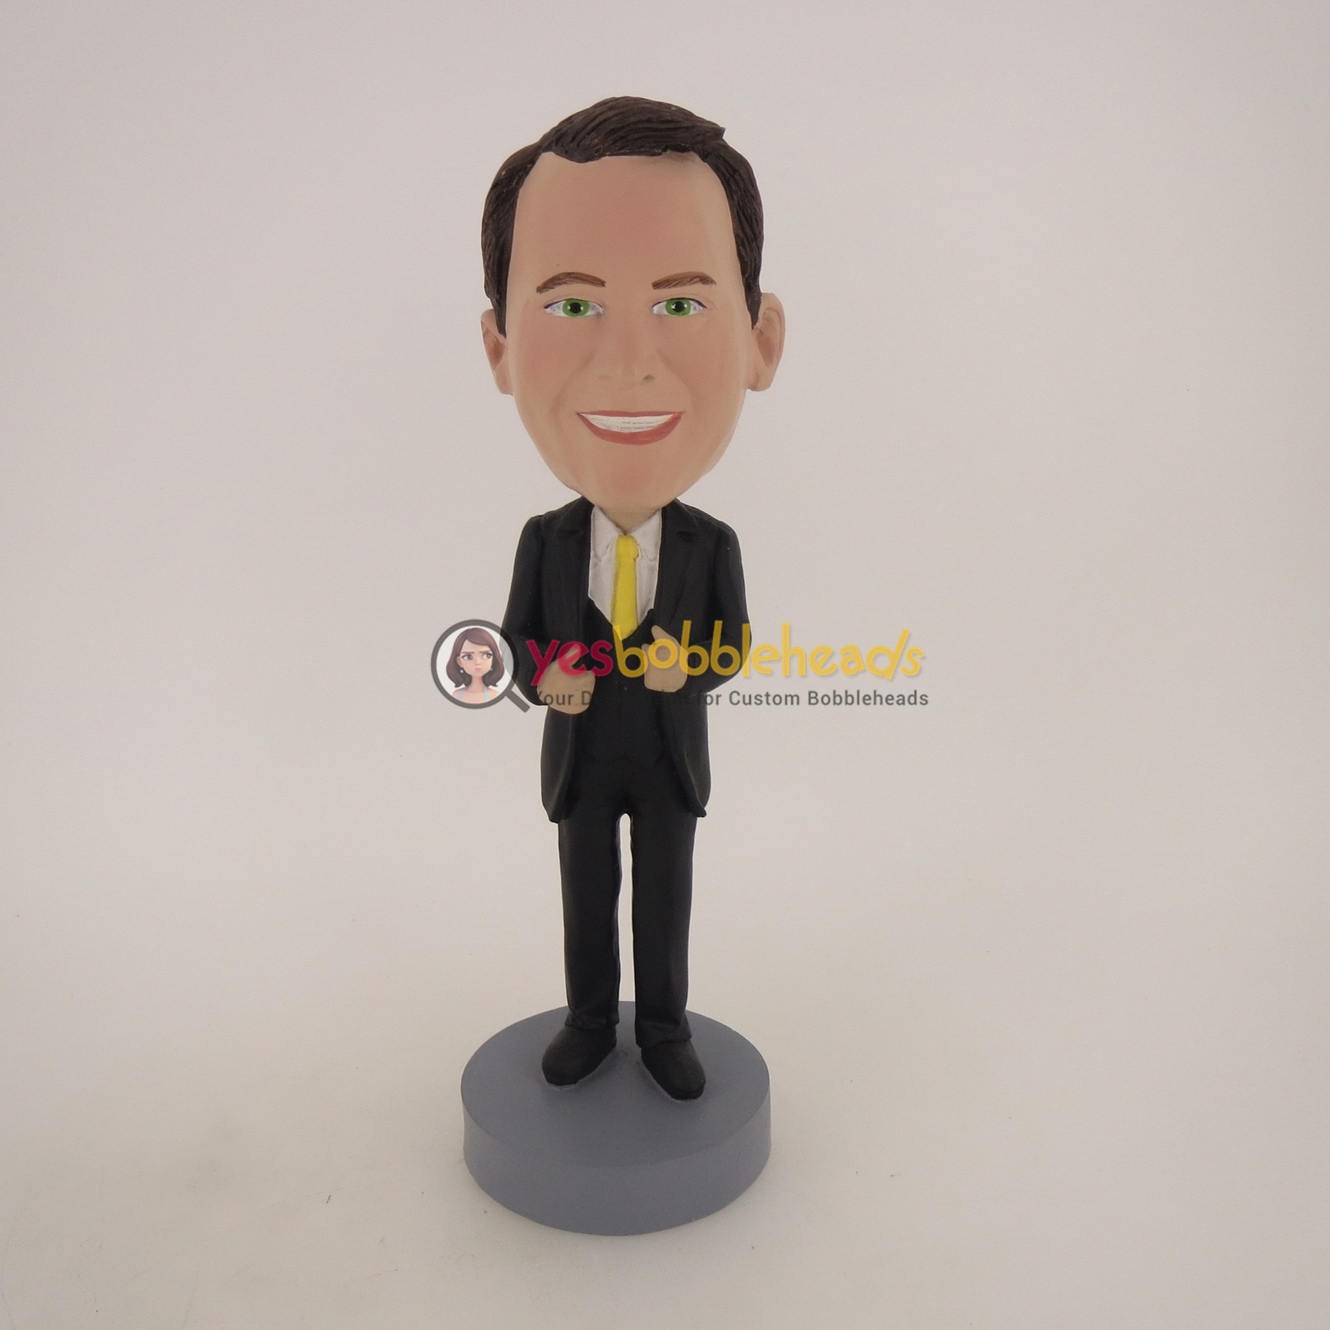 Picture of Custom Bobblehead Doll: Business Man In Nice Suit And Yellow Tie